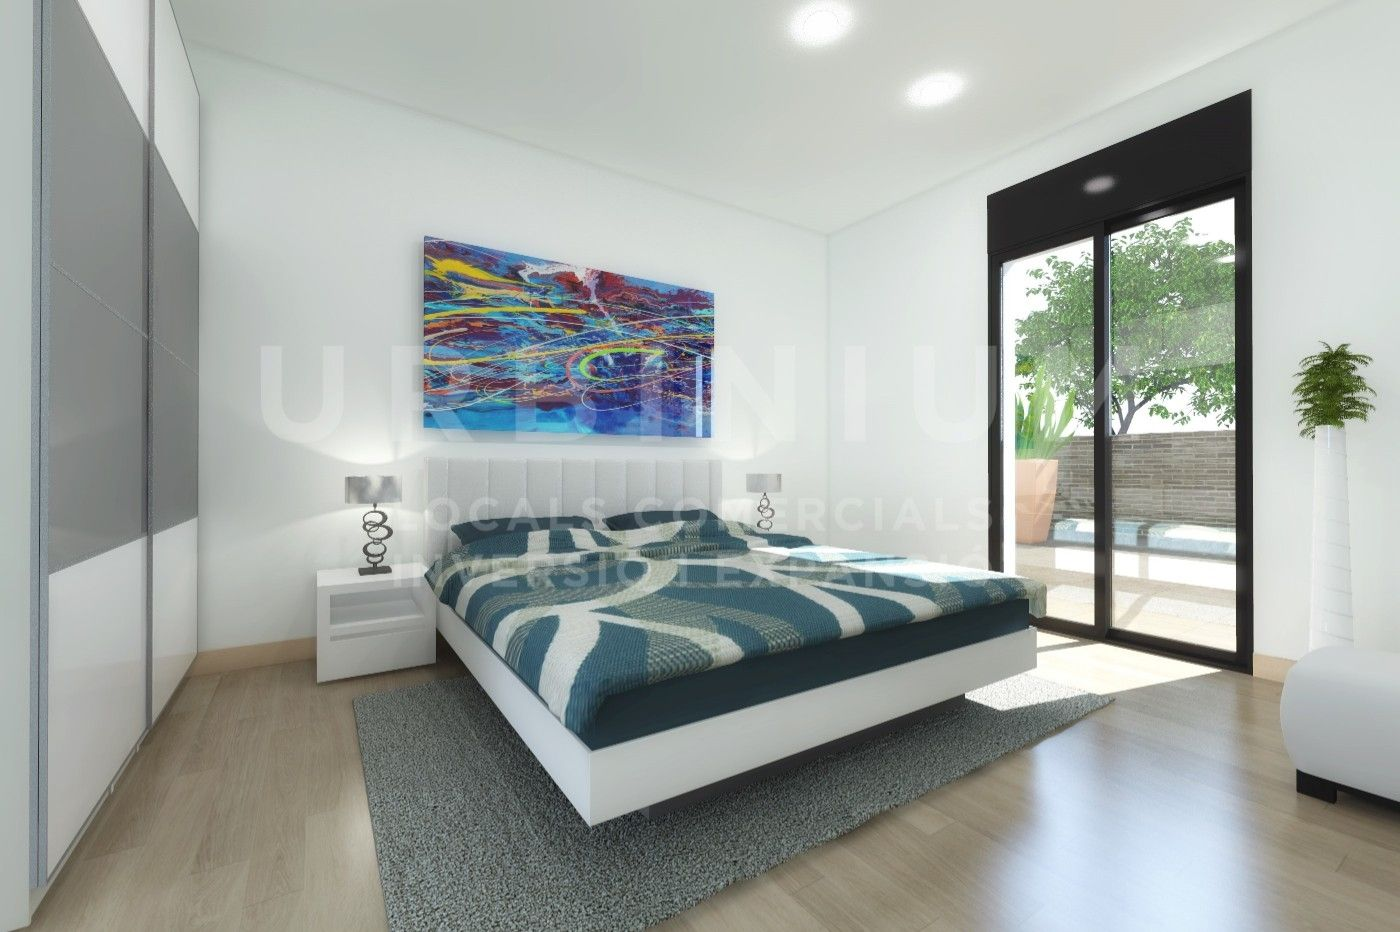 Appartement à Carrer saragossa, 14. Obra nueva